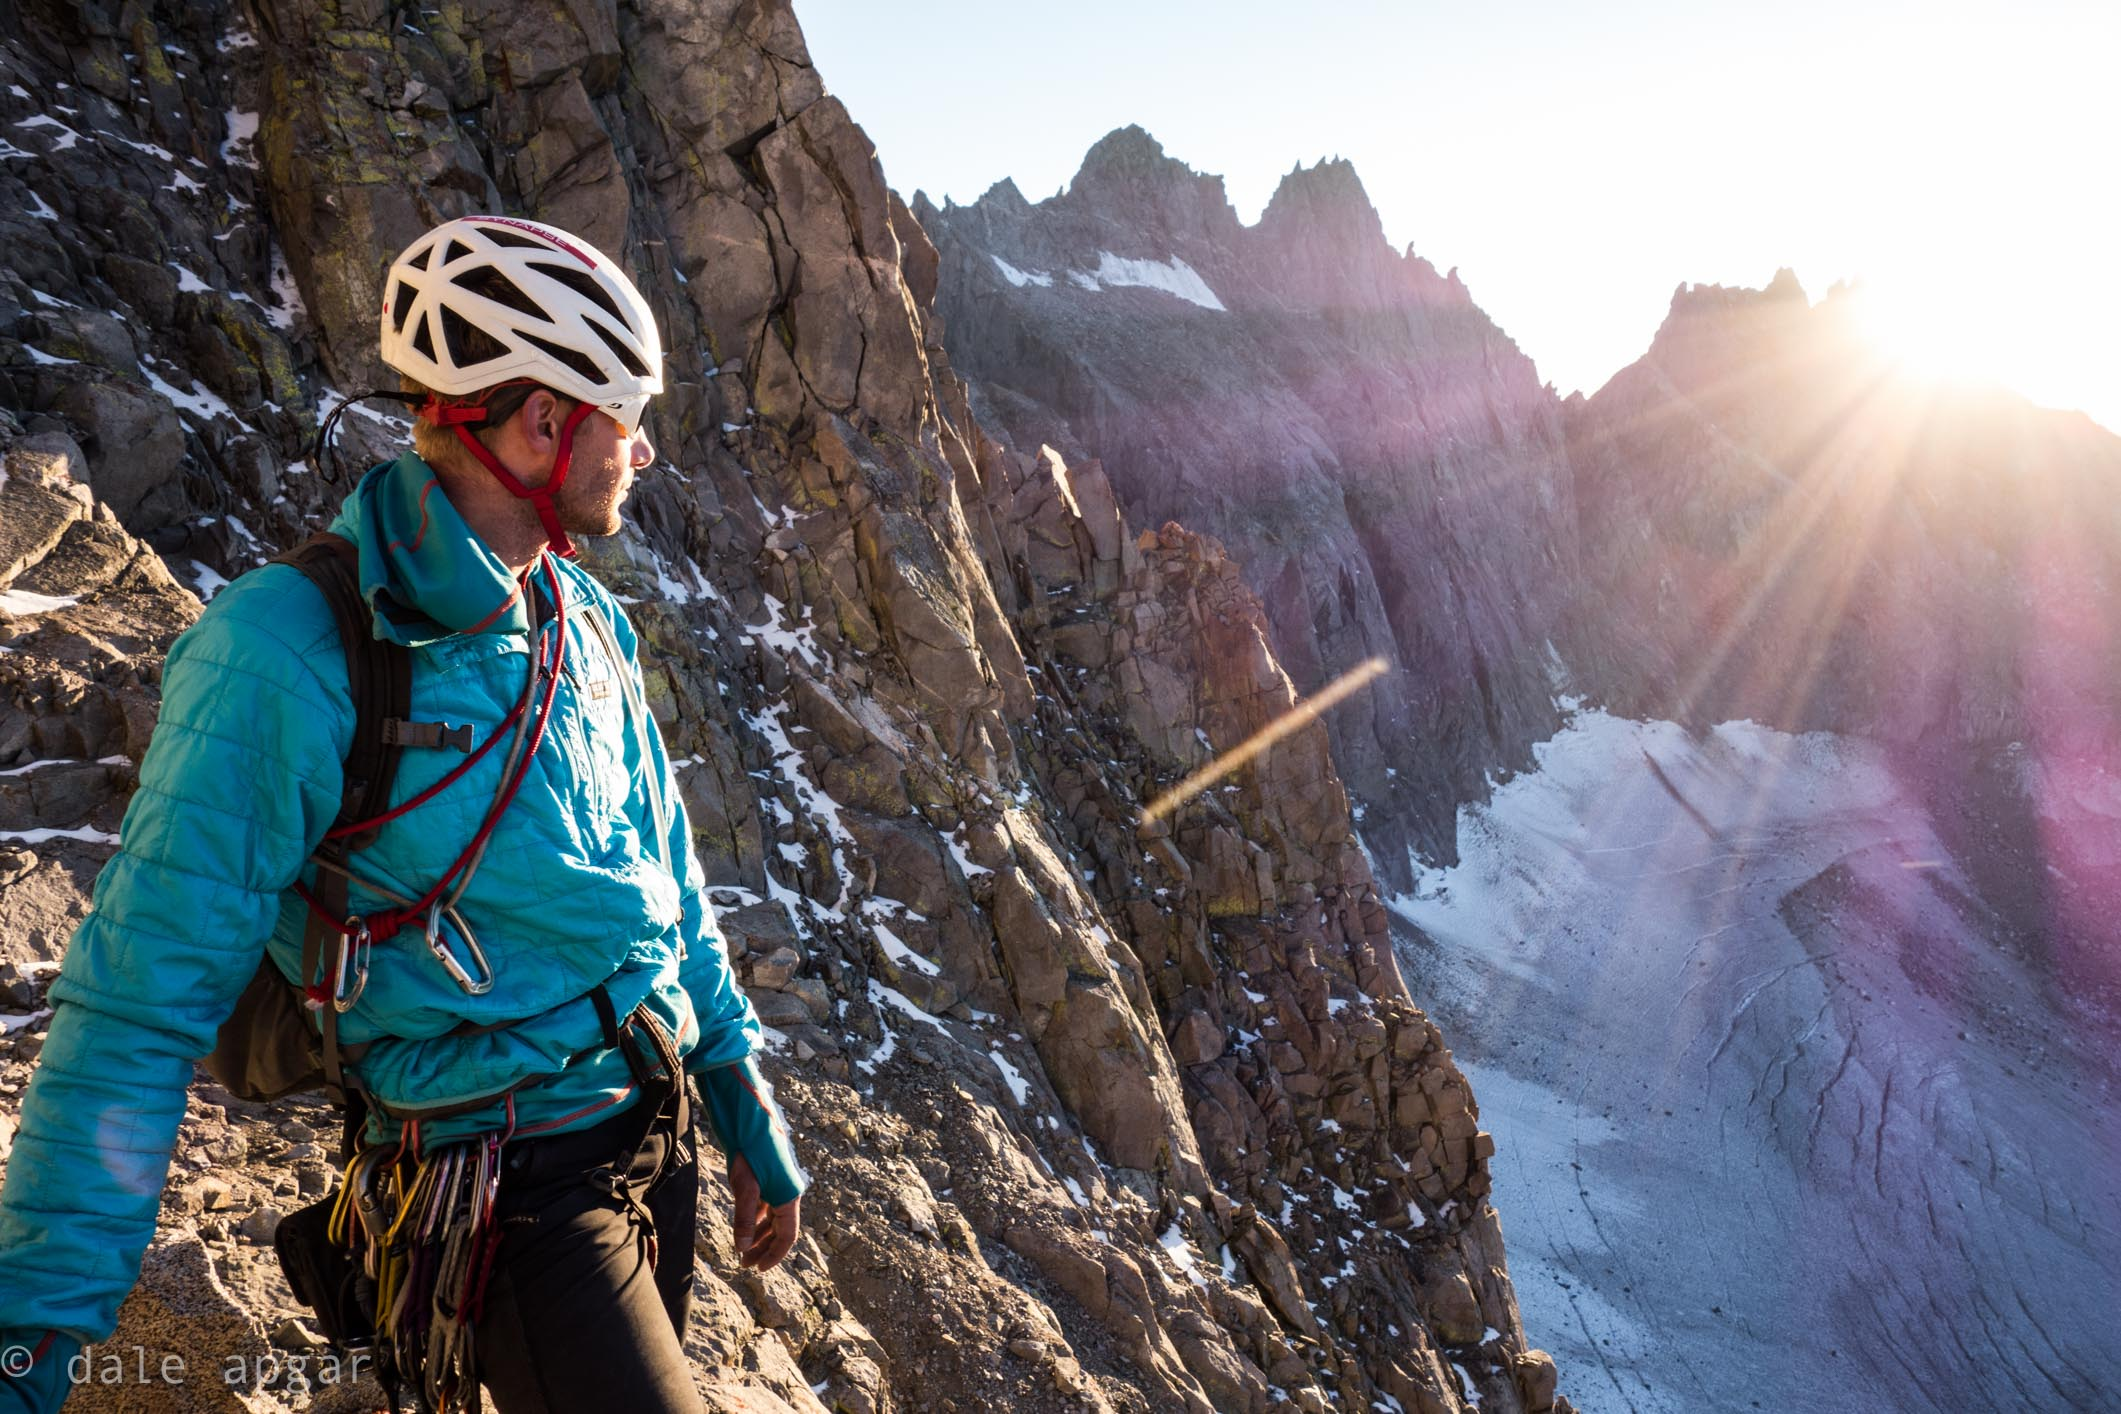 Jeff taking in a sunset while descending The Sierra's Mt. Sill